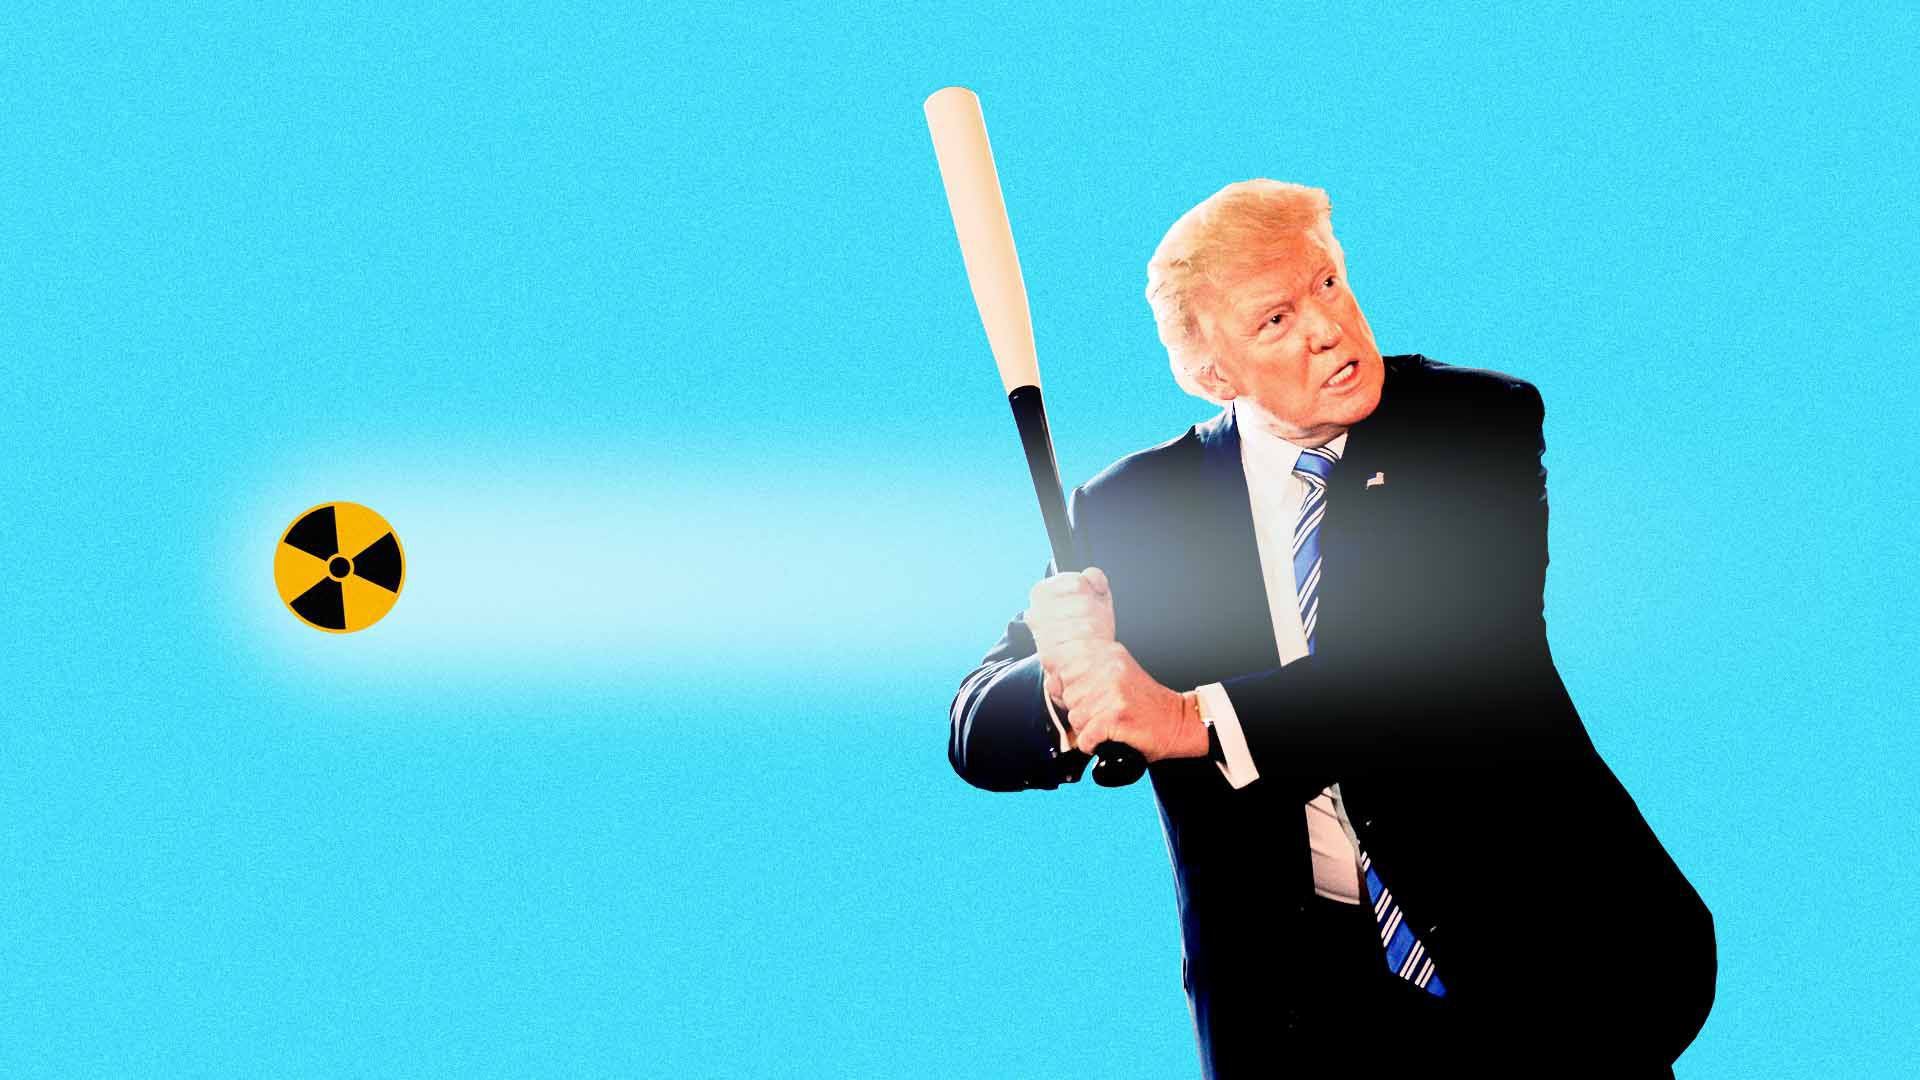 Illustration of Trump holding a bat as a baseball with a nuclear image goes past him